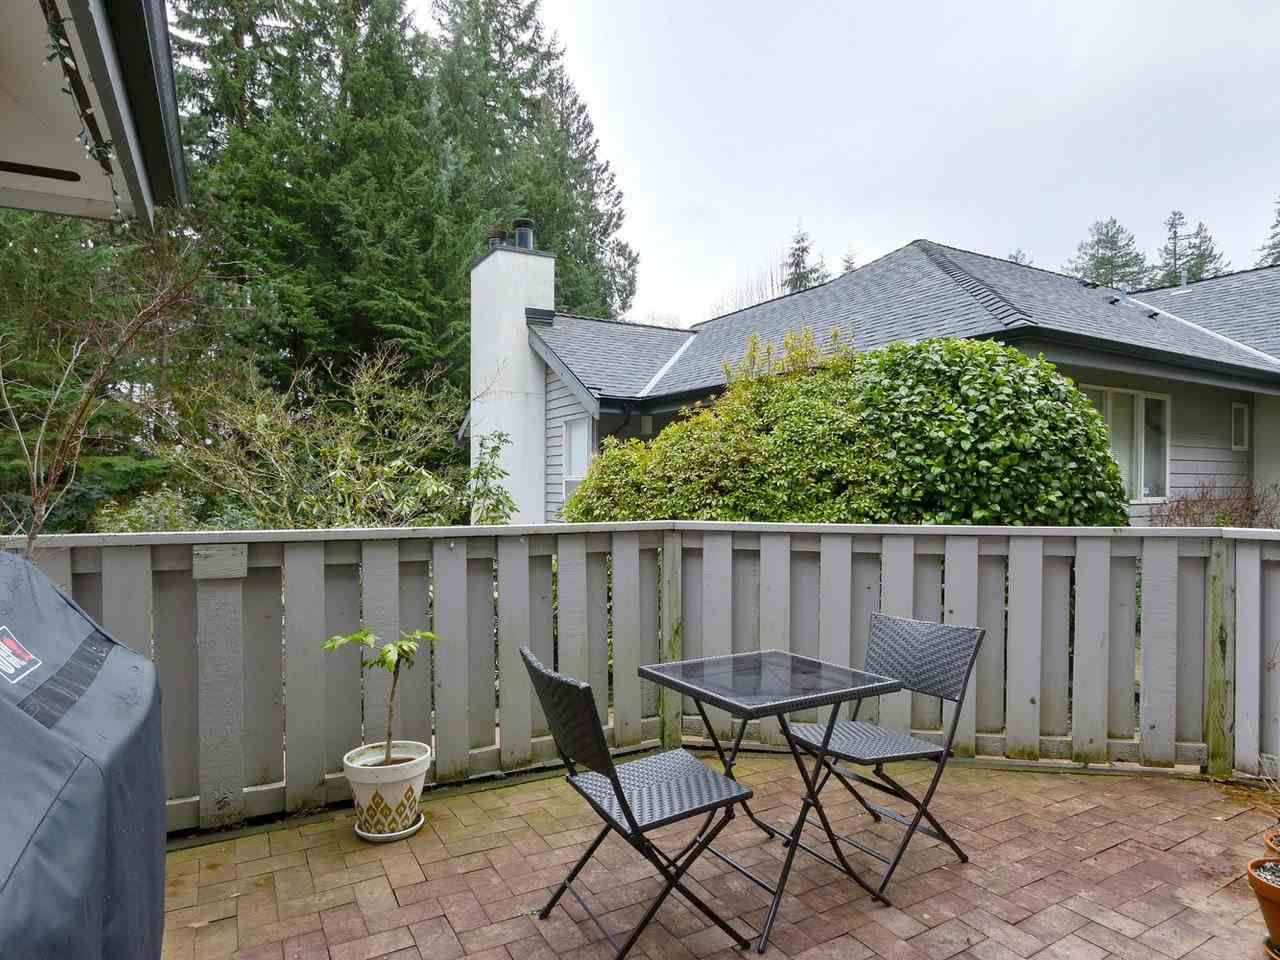 """Photo 20: Photos: 5916 NANCY GREENE Way in North Vancouver: Grouse Woods Townhouse for sale in """"Grousemont Estates"""" : MLS®# R2432954"""